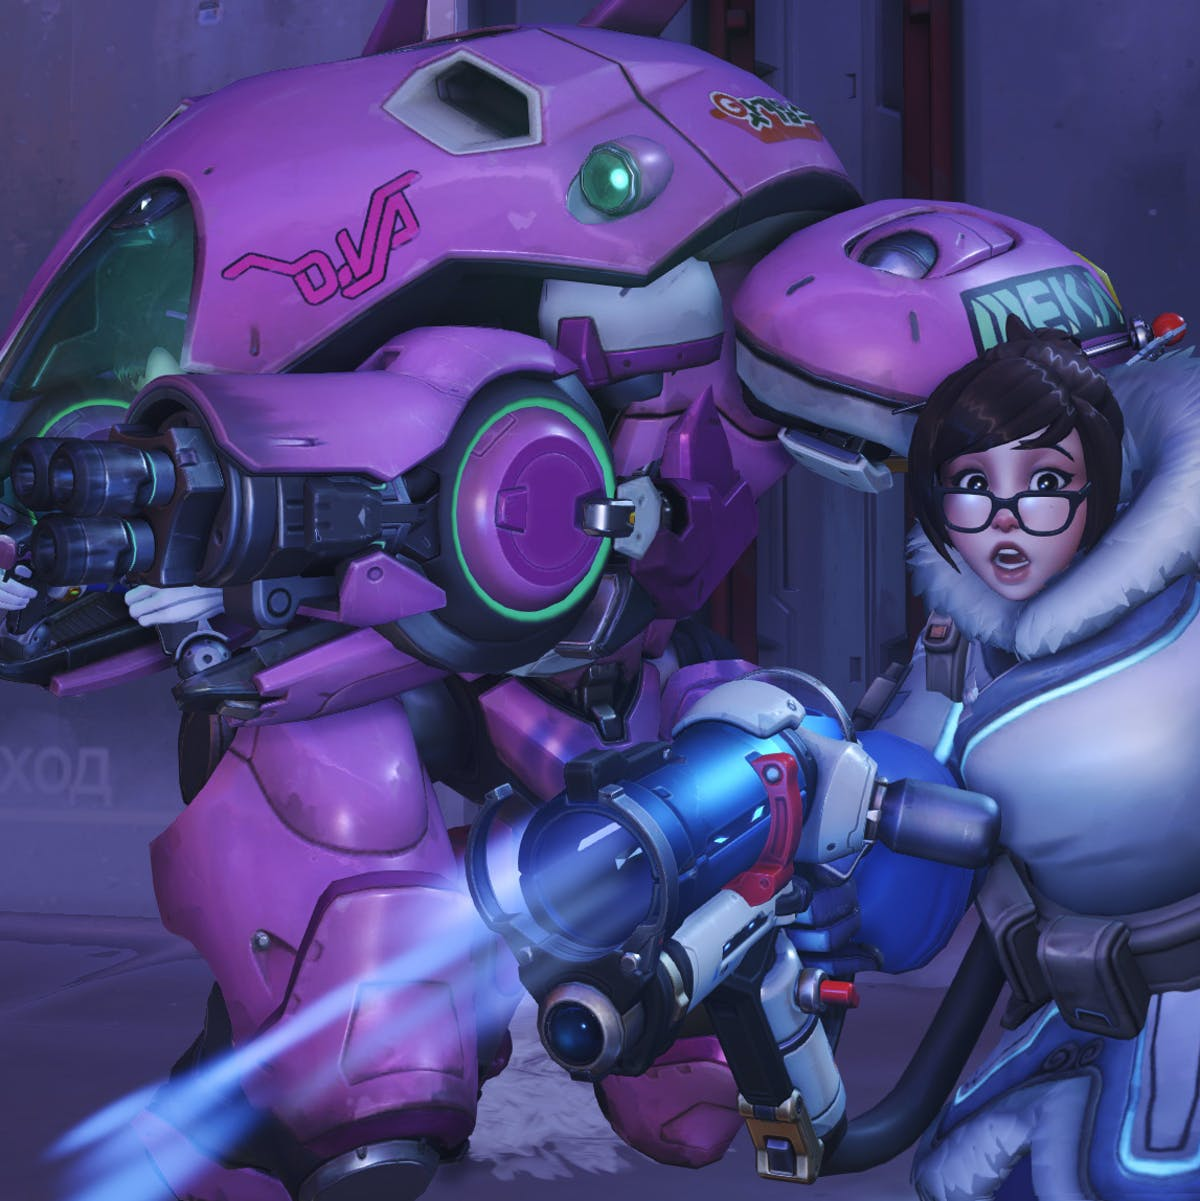 'Overwatch' PTR patch 1.44 nerfs one of the game's strongest support heroes